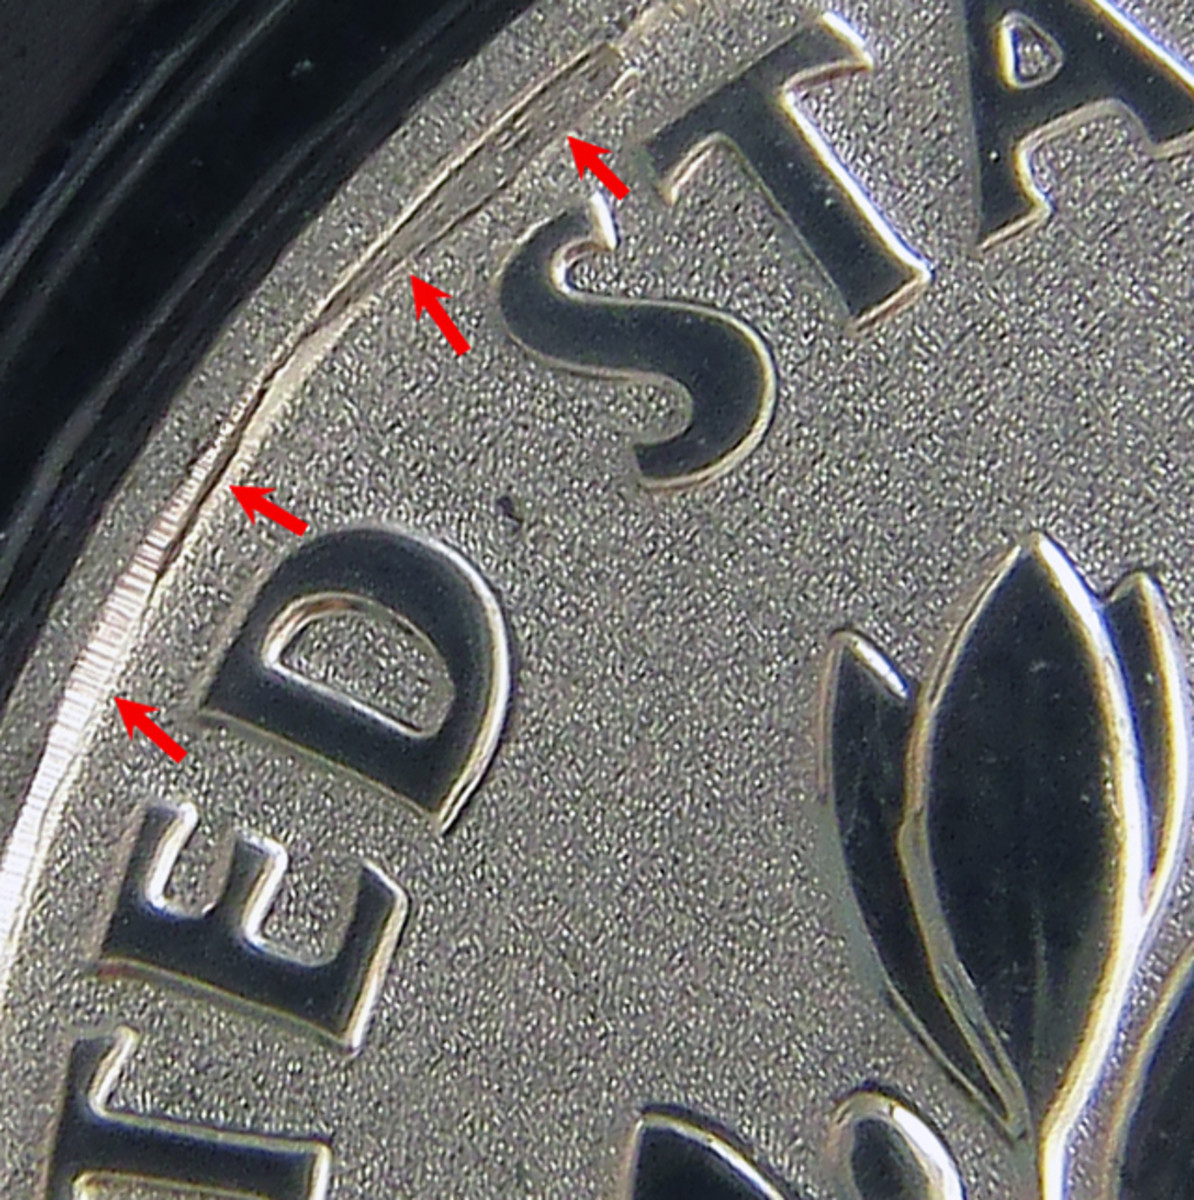 A rim-damaged die struck this reverse proof March of Dimes dime.